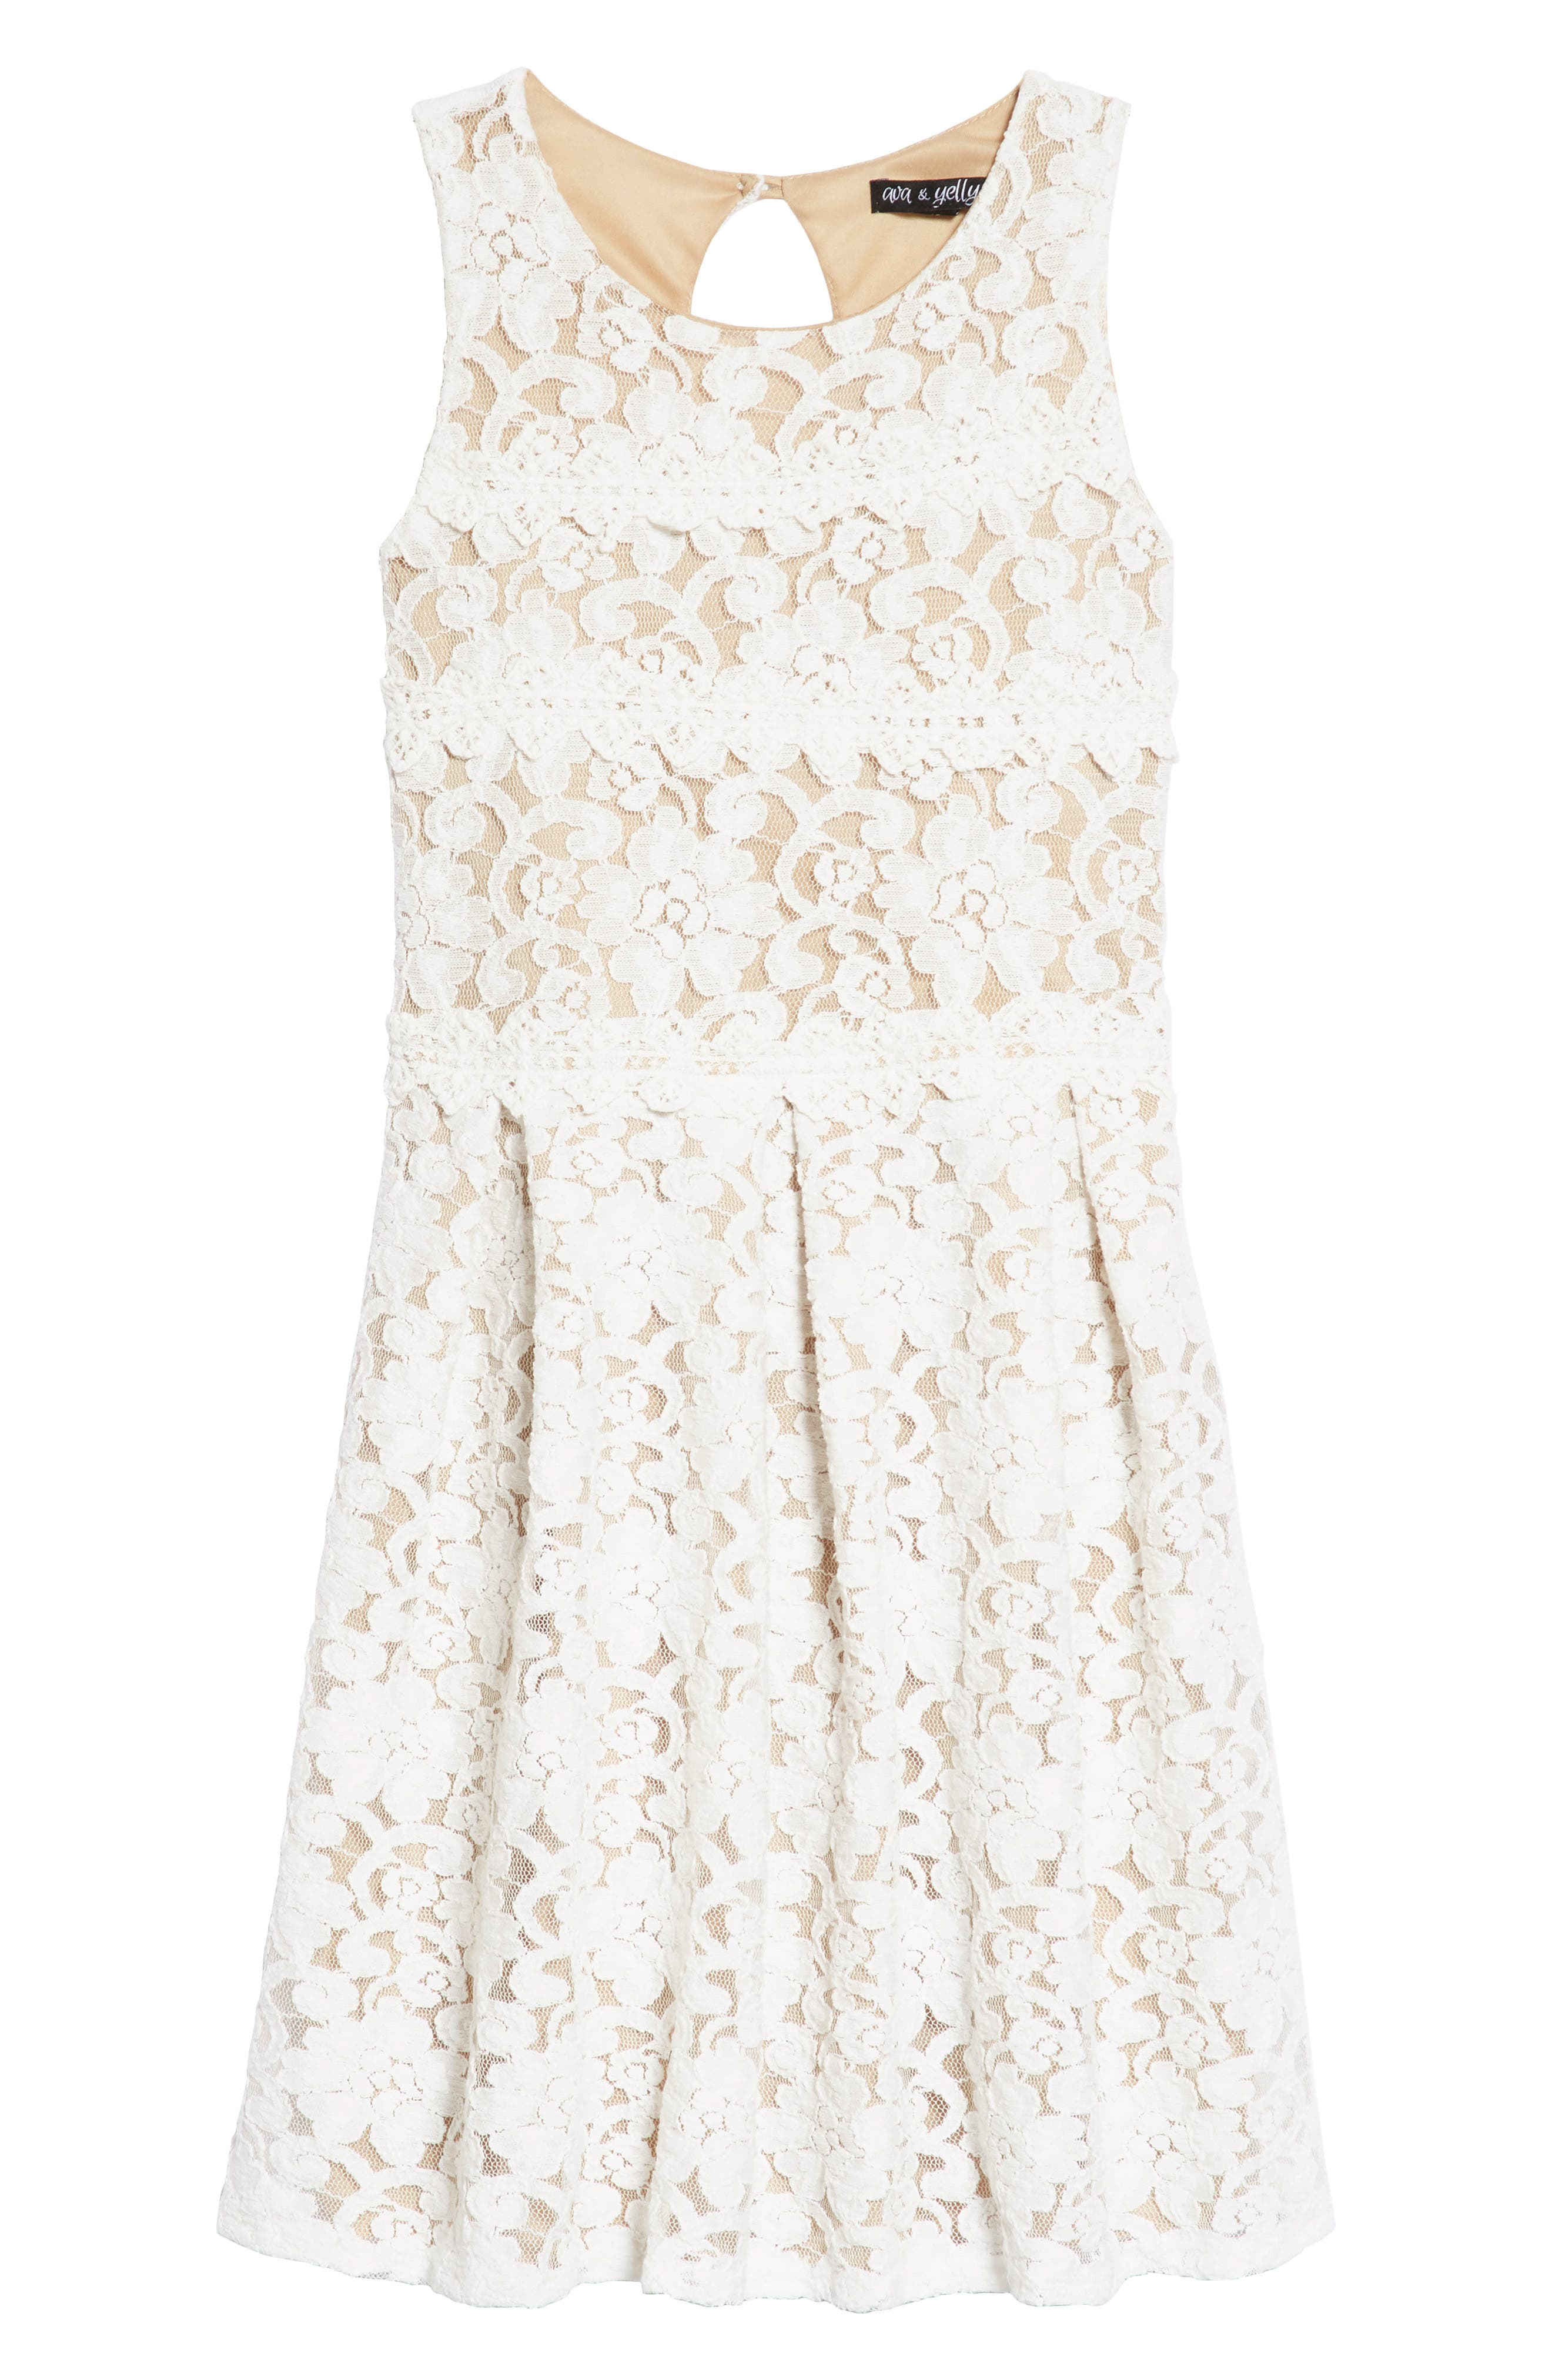 Two Tone Lace Skater Dress,                         Main,                         color, 900